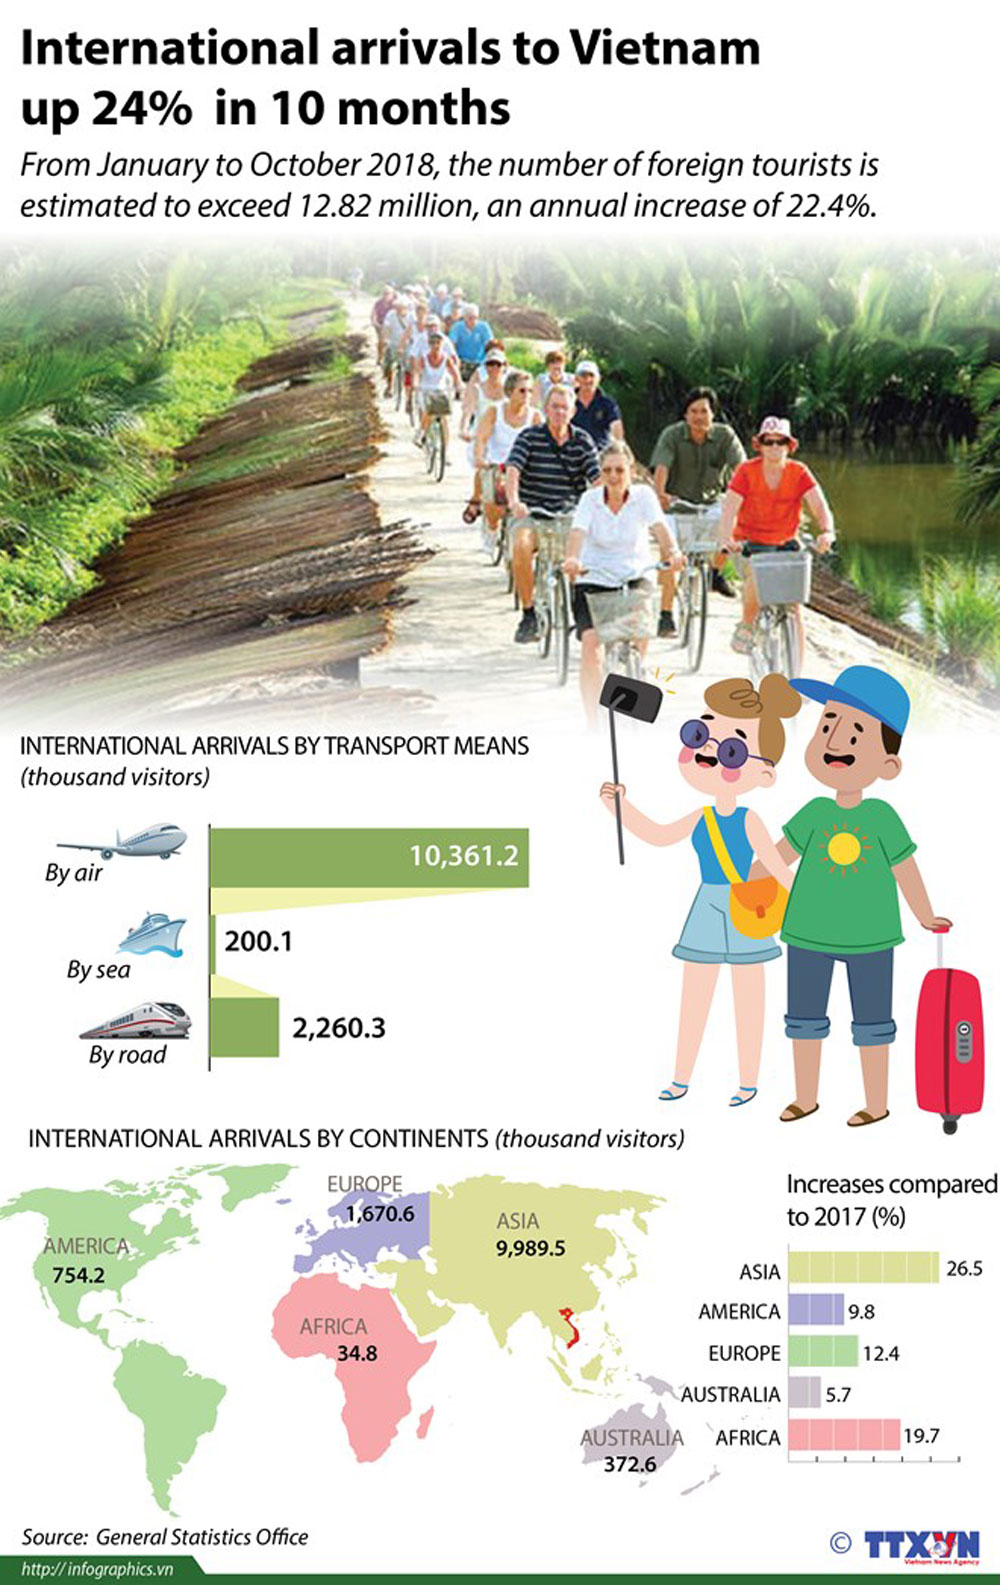 International arrivals, Vietnam, 10 months, foreign tourists, annual increase, transport means